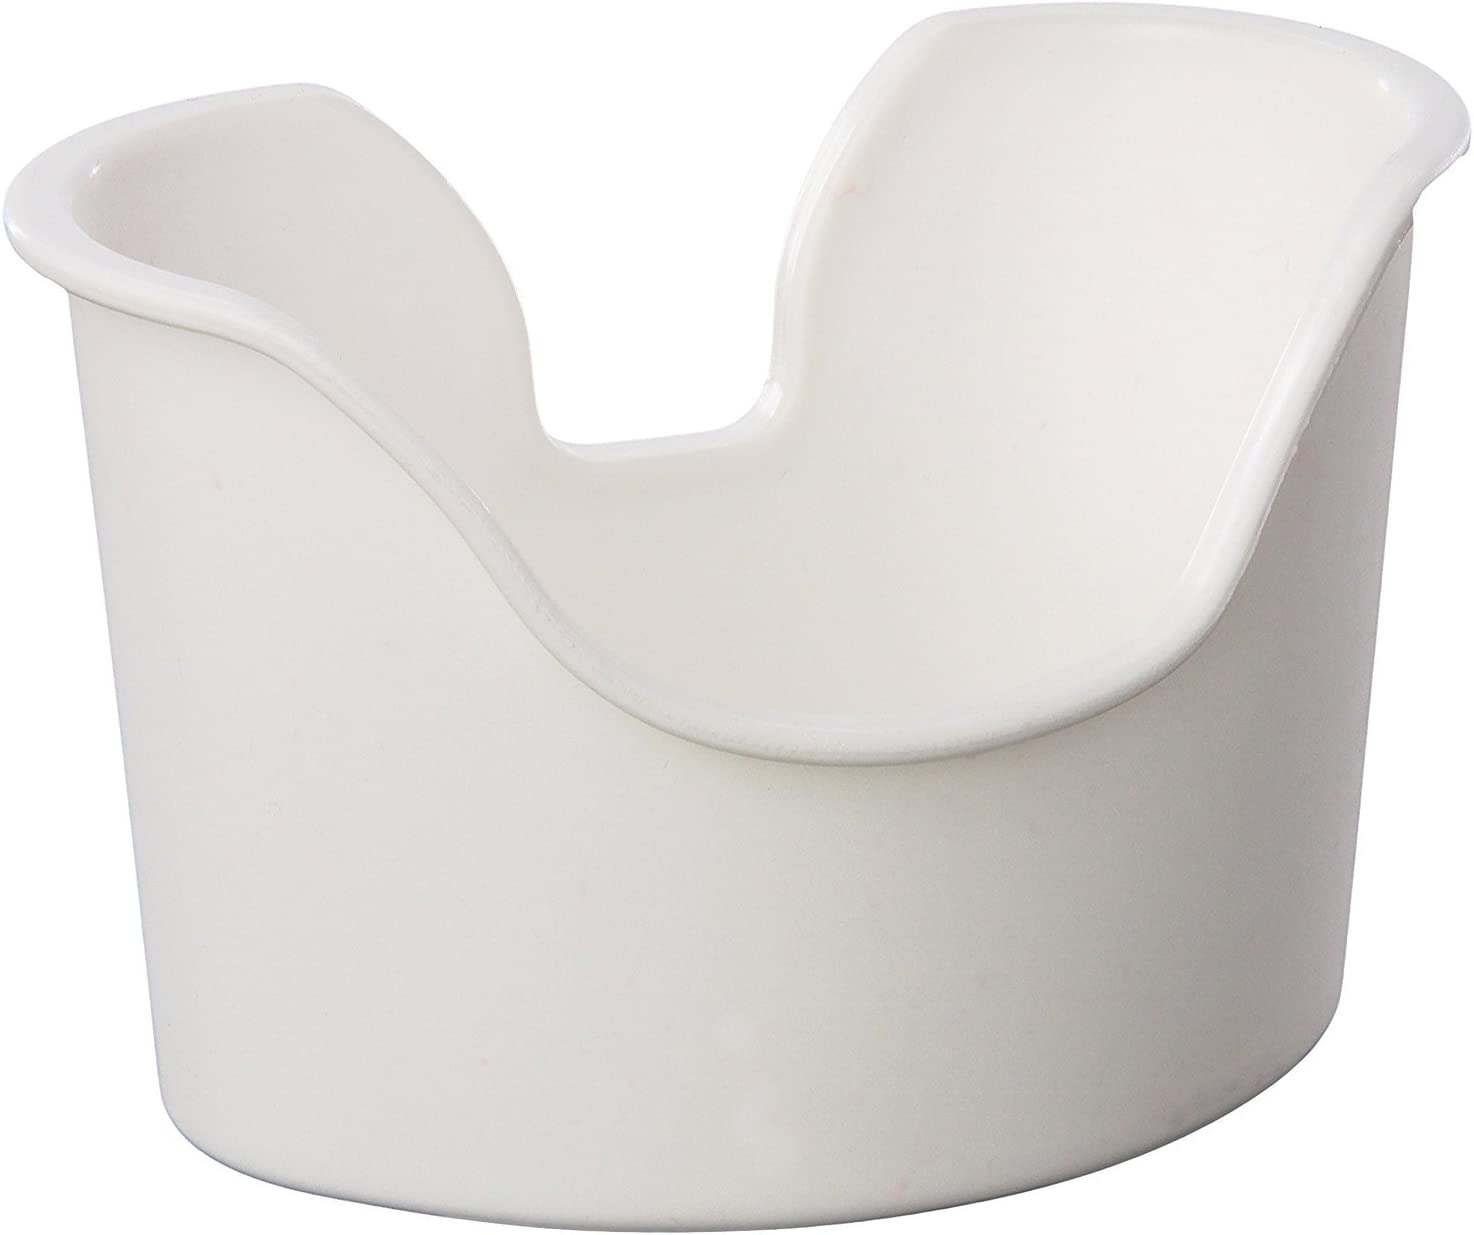 Ear Wash Basin - Compatible with Doctor Easy (TM) Elephant, Rhino and Wax-Rx (TM) Ear Wash Systems